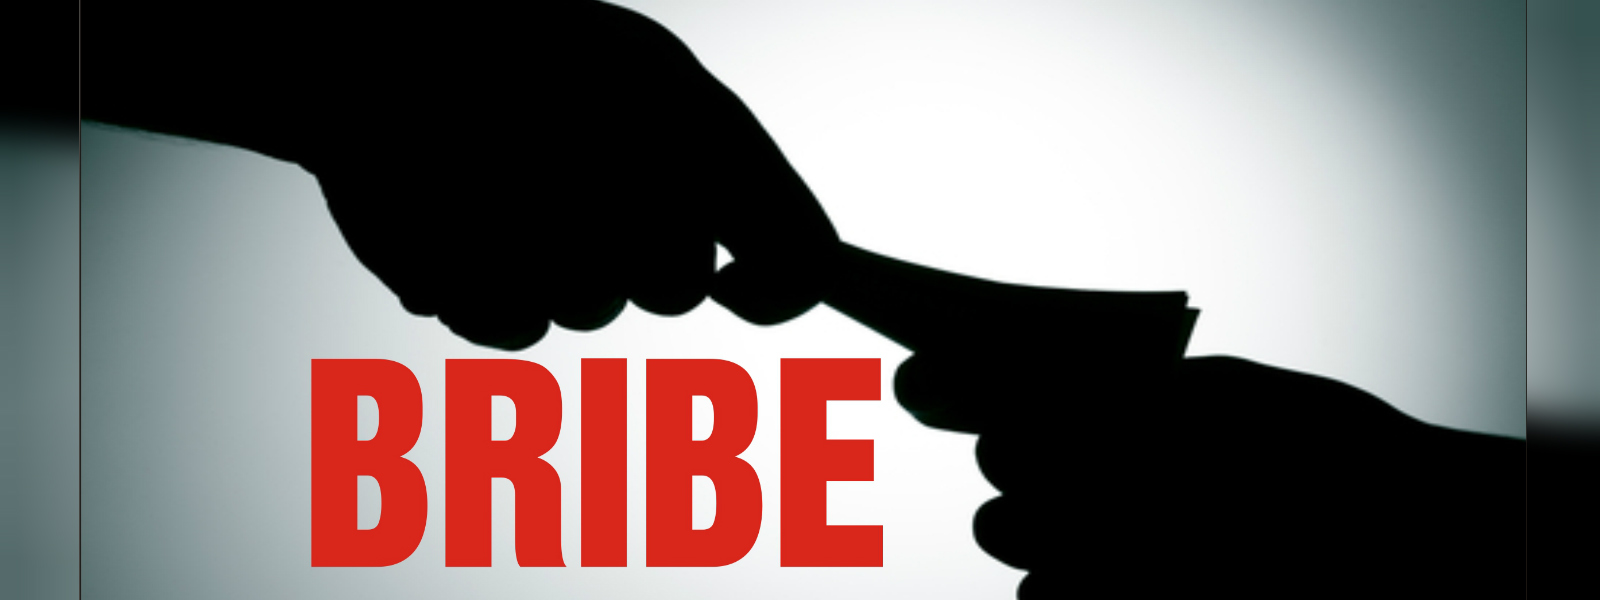 Development officer arrested for soliciting bribe of Rs. 60,000